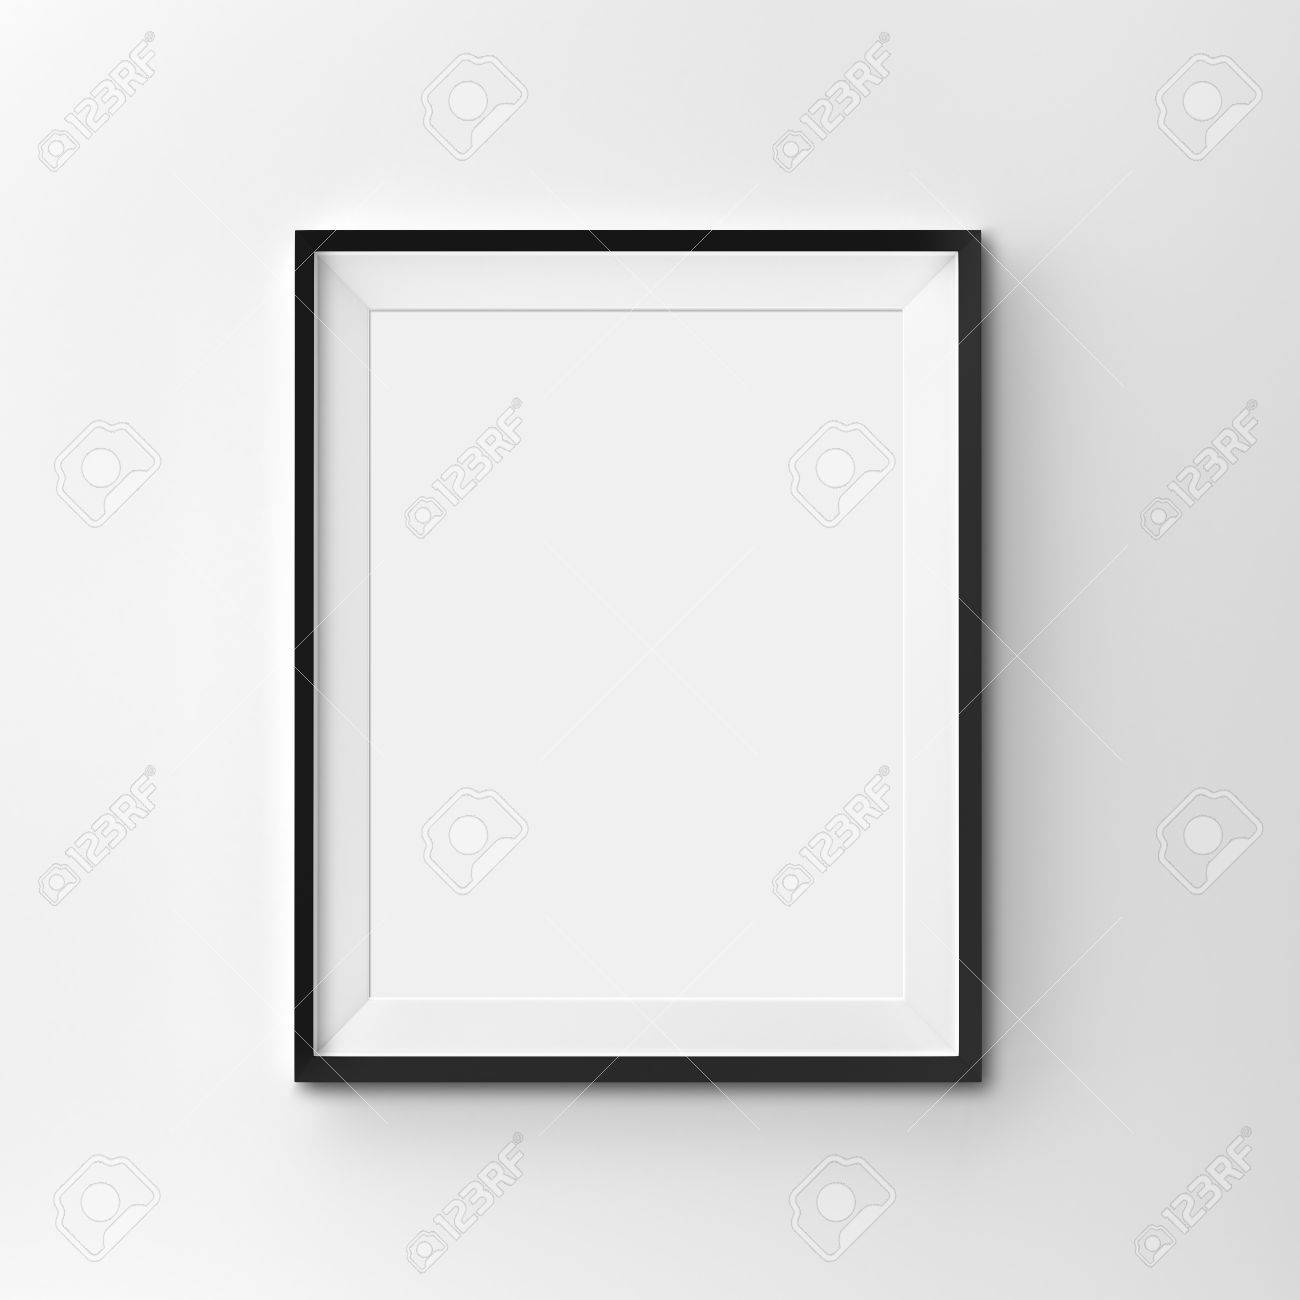 White Blank Frame On Clean Background Stock Photo, Picture And ...